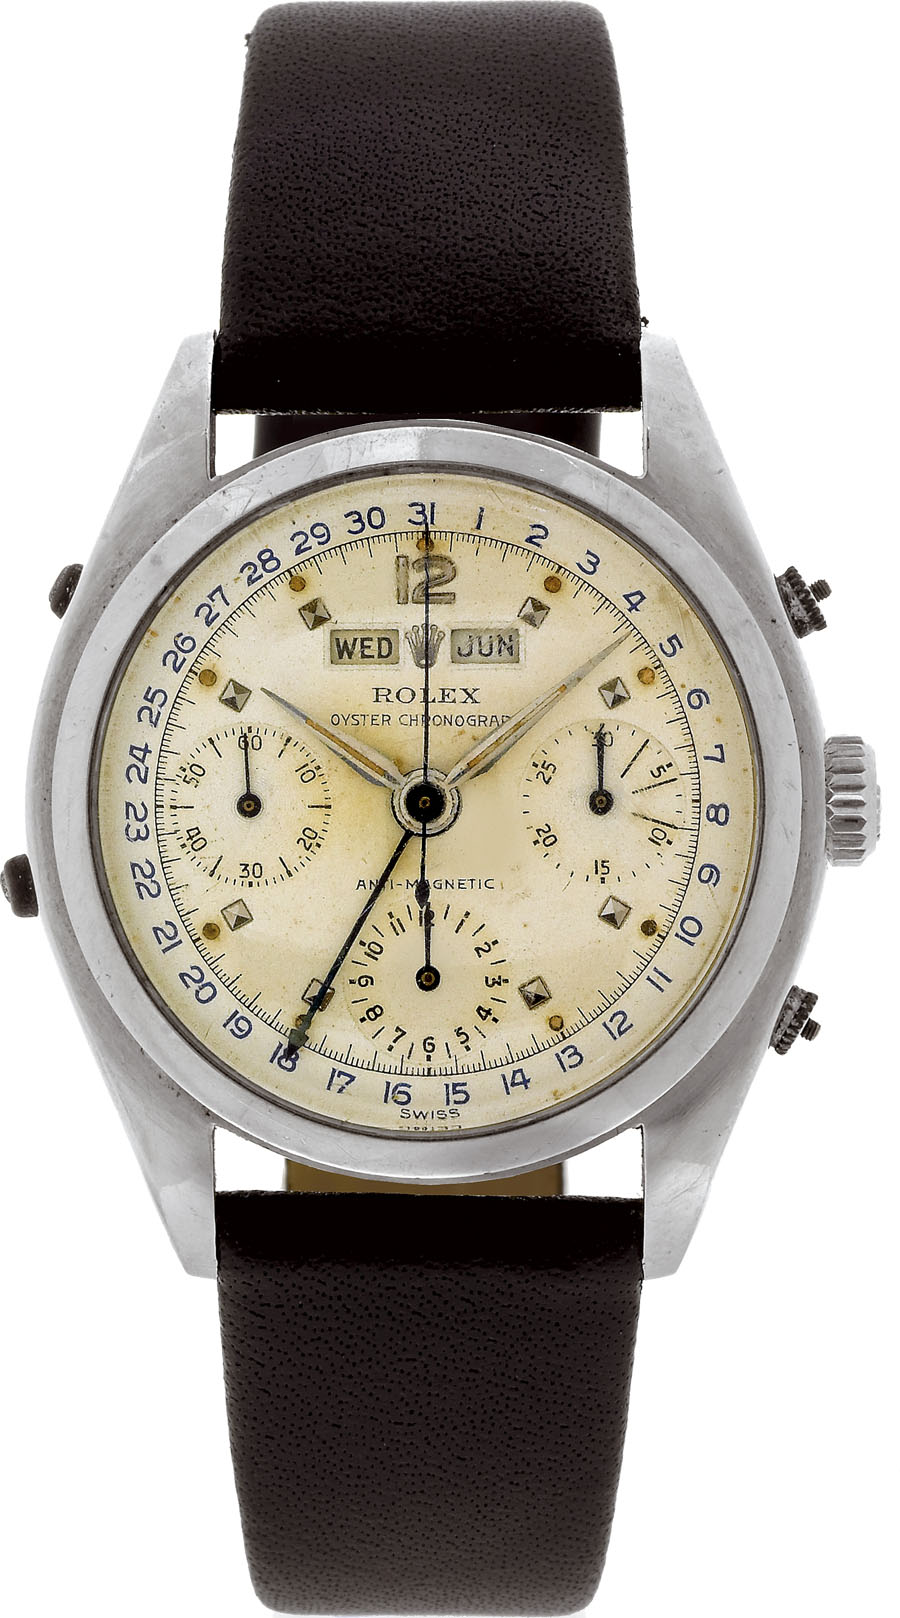 "Rolex Oyster Chronograph ""Jean Claude Killy"" 6036"